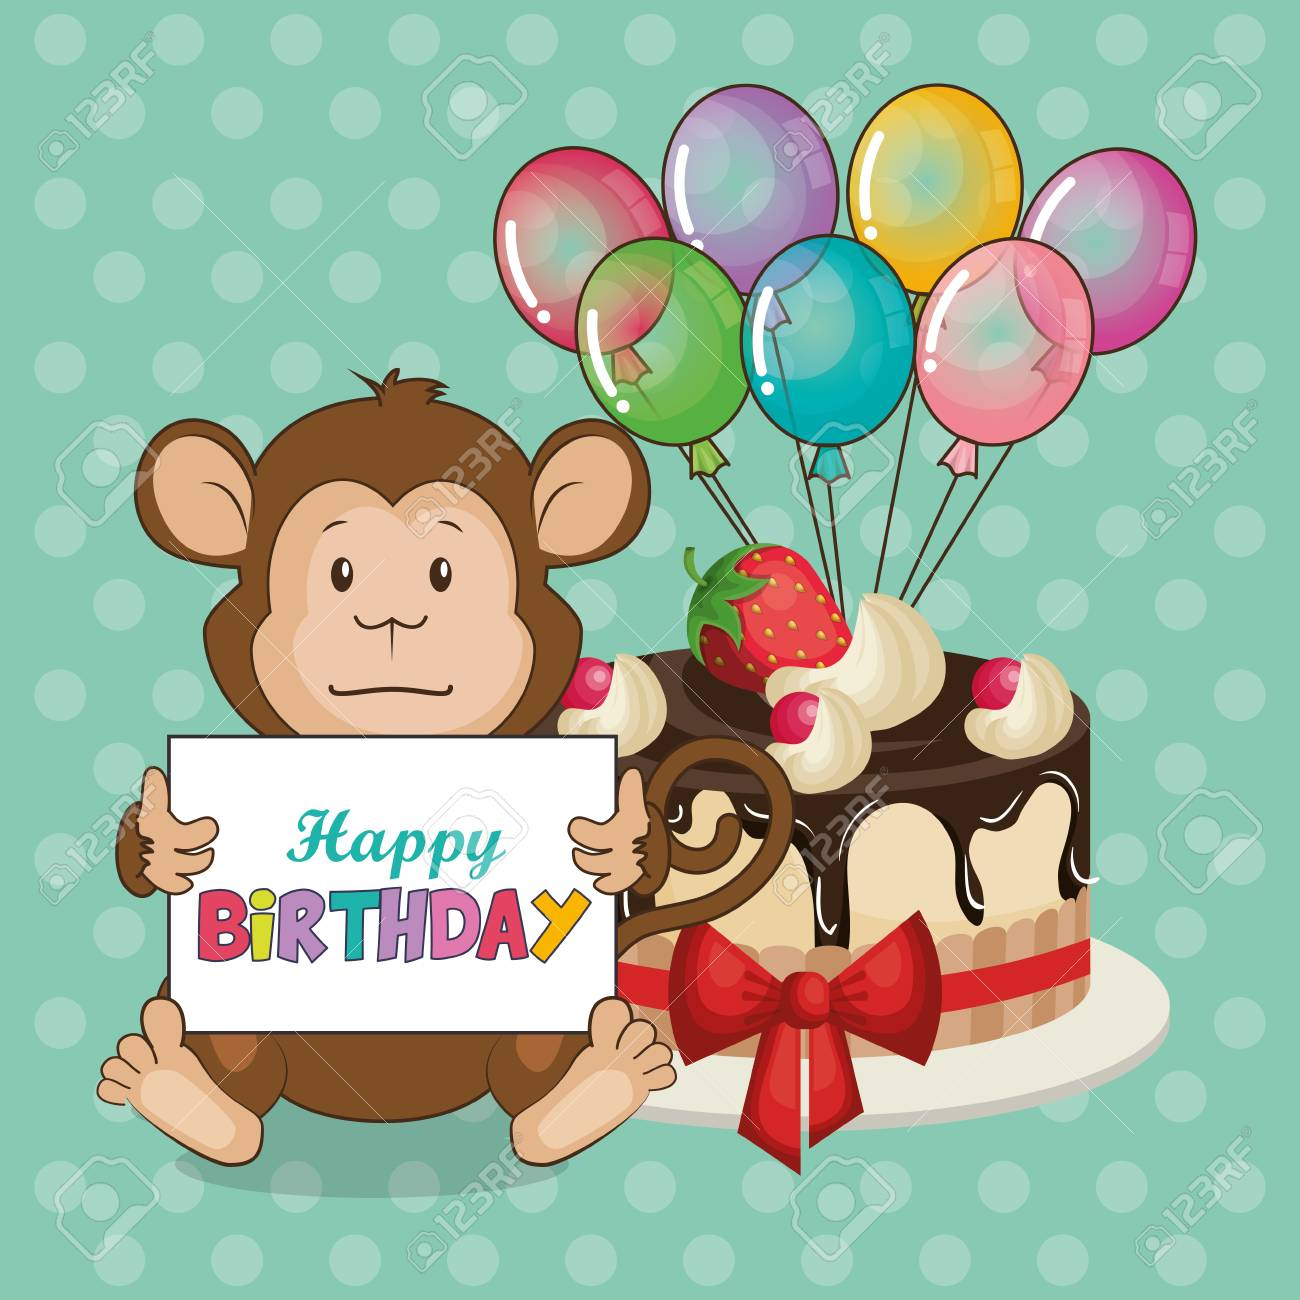 Happy Birthday Card With Cute Monkey Vector Illustration Design Stock